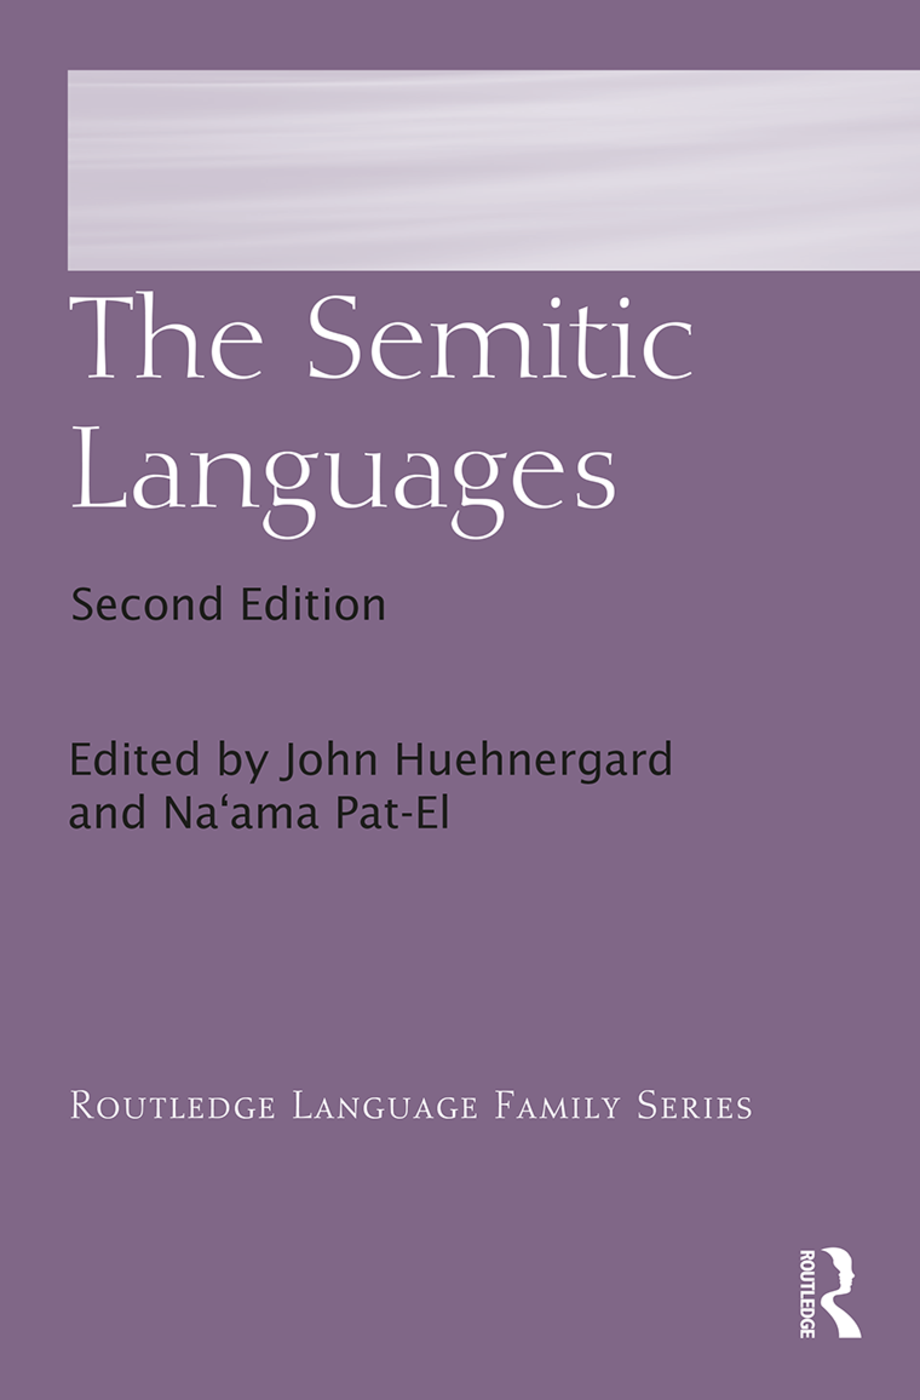 The Semitic Languages